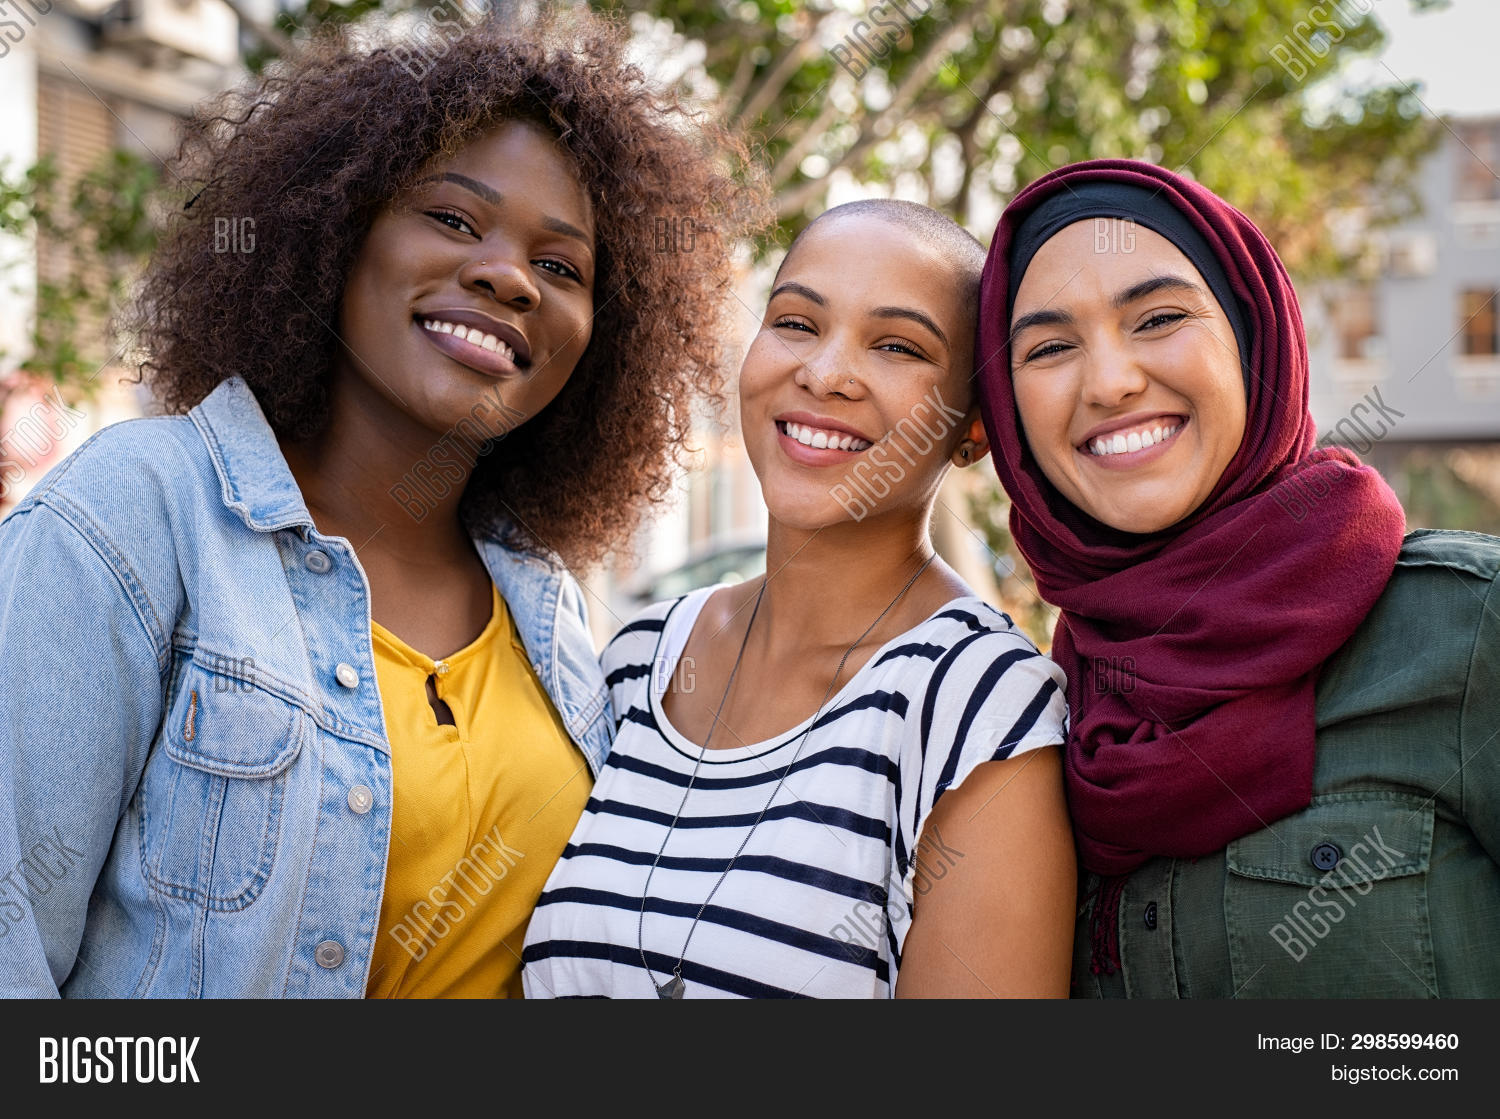 african,american,arabic,beautiful,black,bonding,carefree,casual,college,cultural,cultural differences,curvy woman,curvy women,different cultures,diversity,diversity people,enjoy,freedom,friend,friends,friendship,fun,girl,girls,group,happy,hijab,integration,interracial,islamic,islamic woman,joyful,laughing,looking,looking at camera,multi ethnic group,multicultural,multiethnic,multiracial,outdoor,outdoors,people,portrait,real,smiling,student,three,together,woman,young